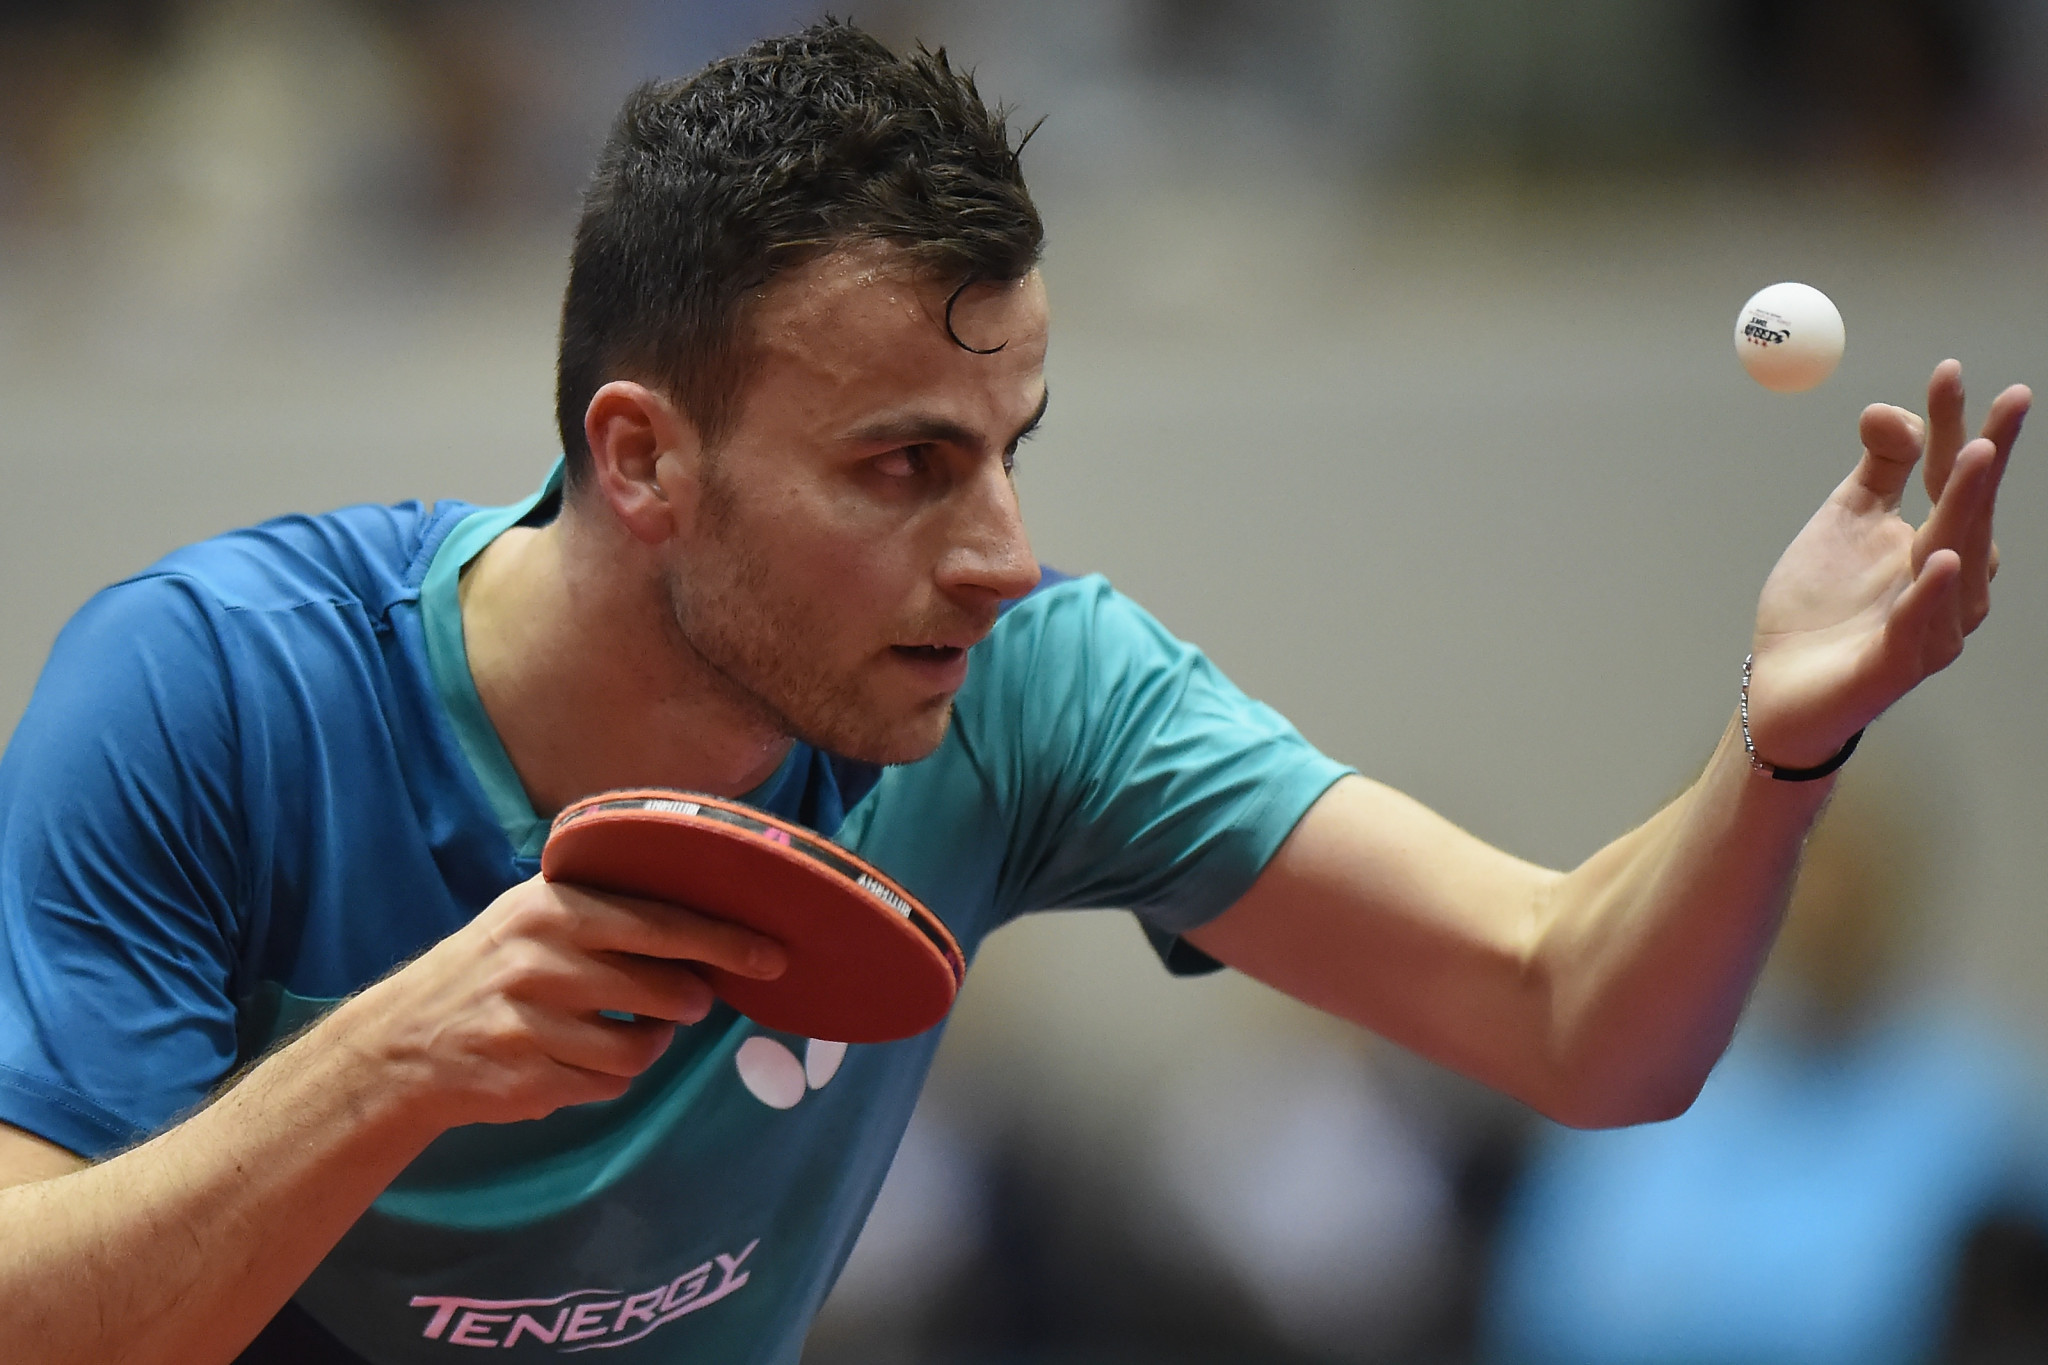 Home favourite causes upset as qualifying begins at ITTF Australian Open